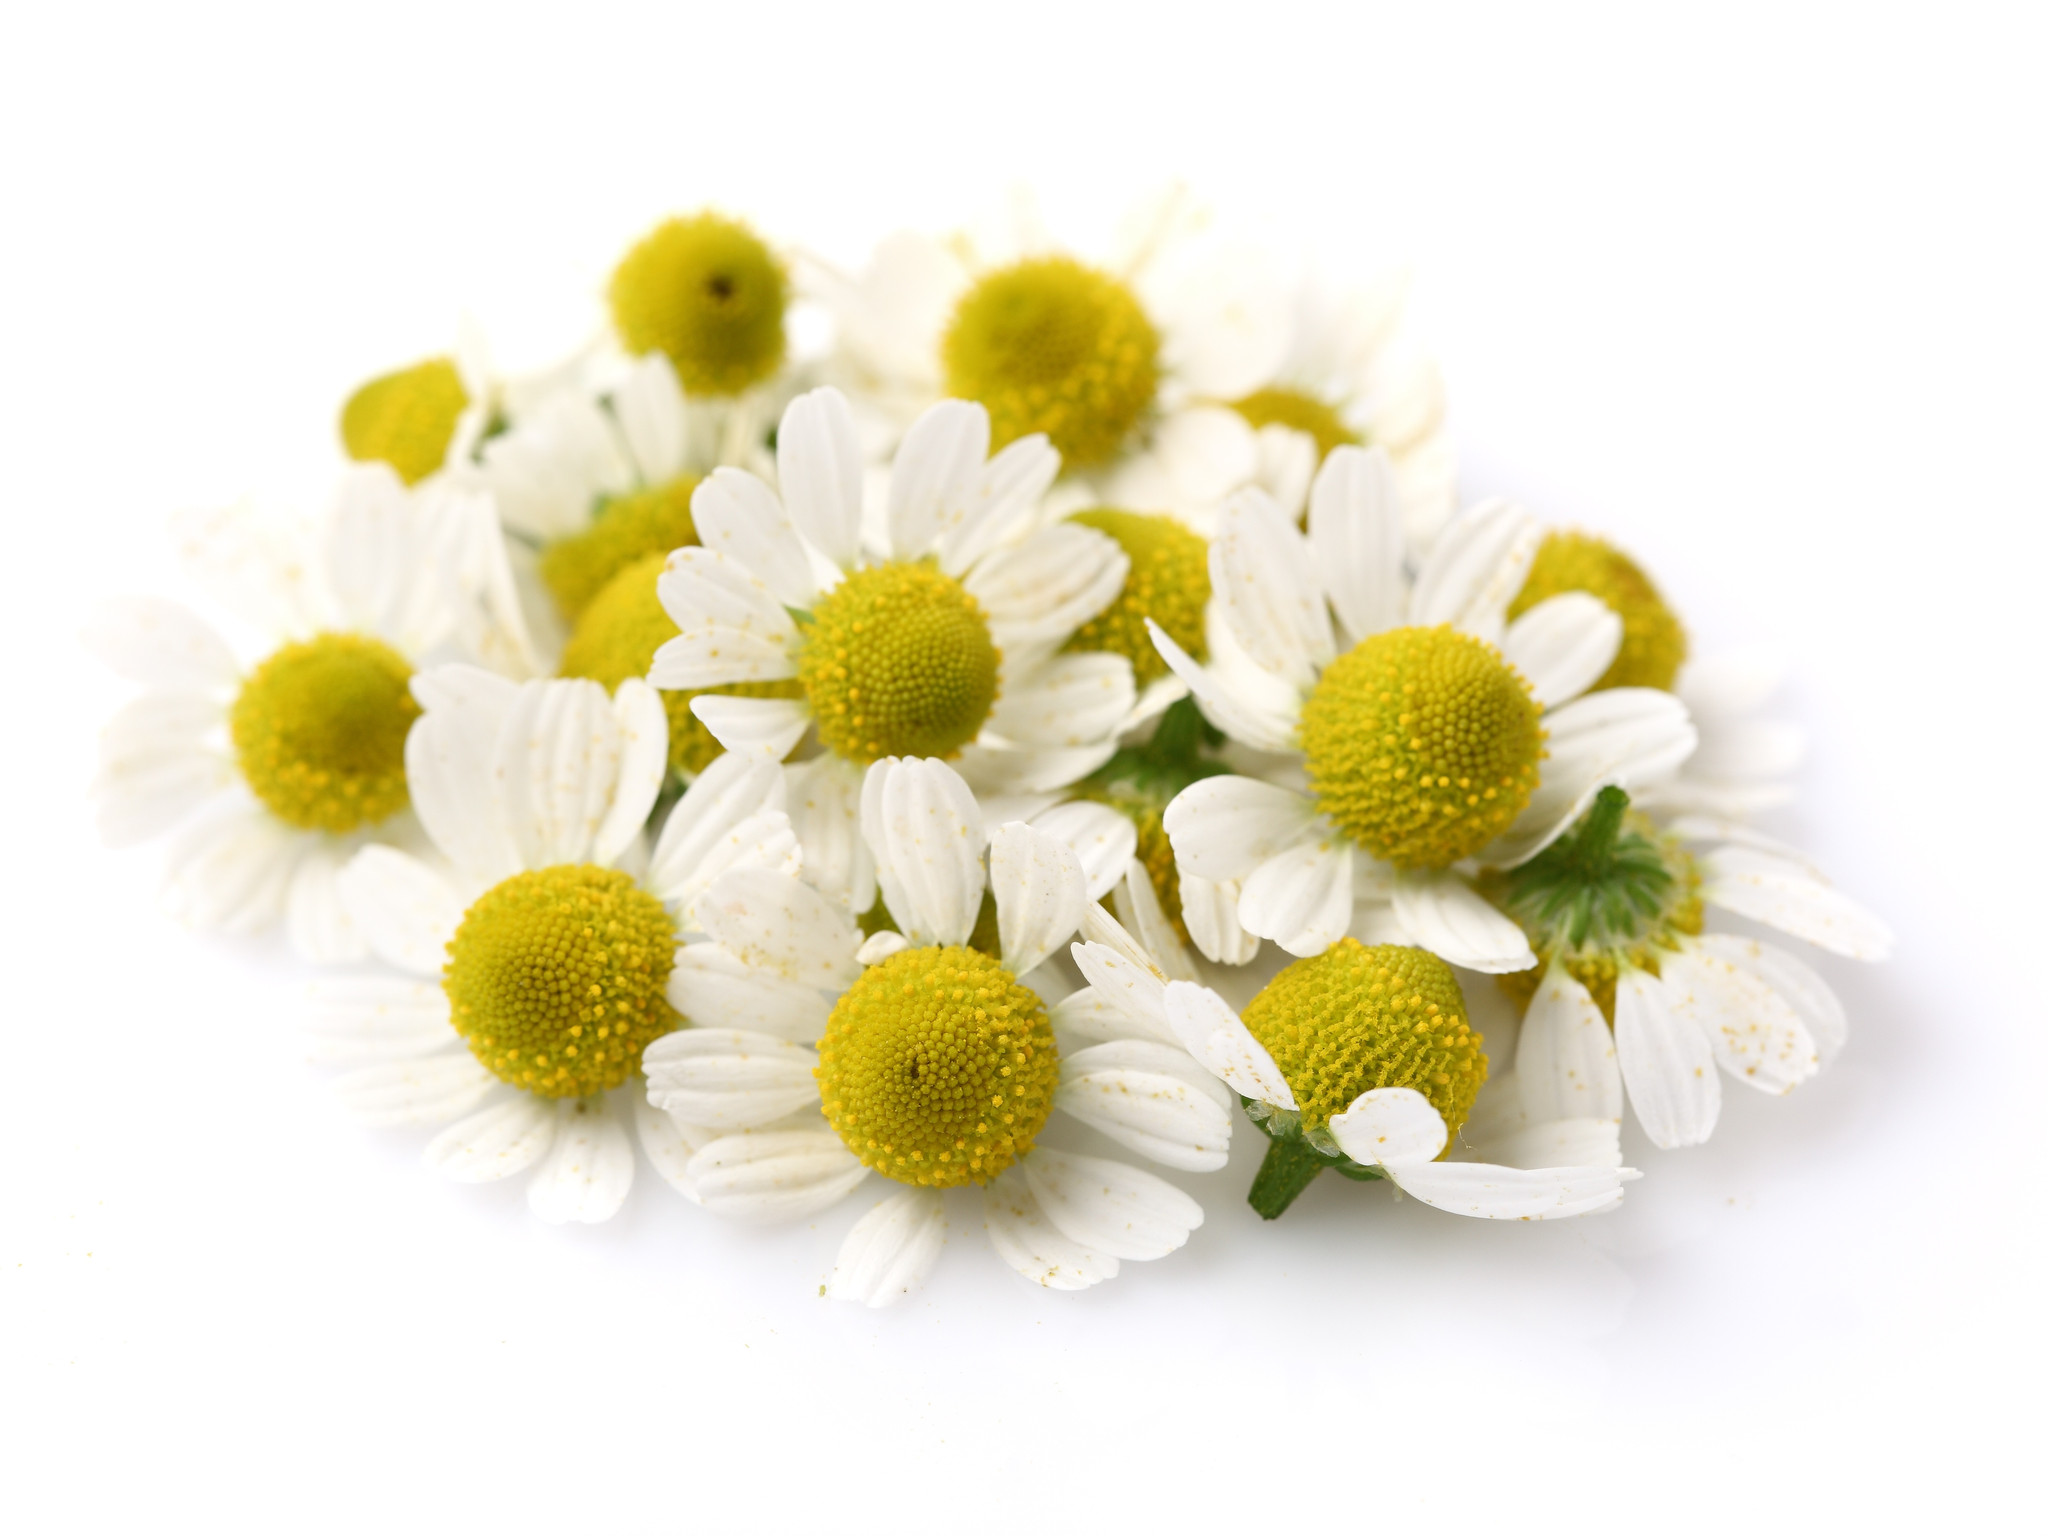 Chamomile Oil 3 dilutions